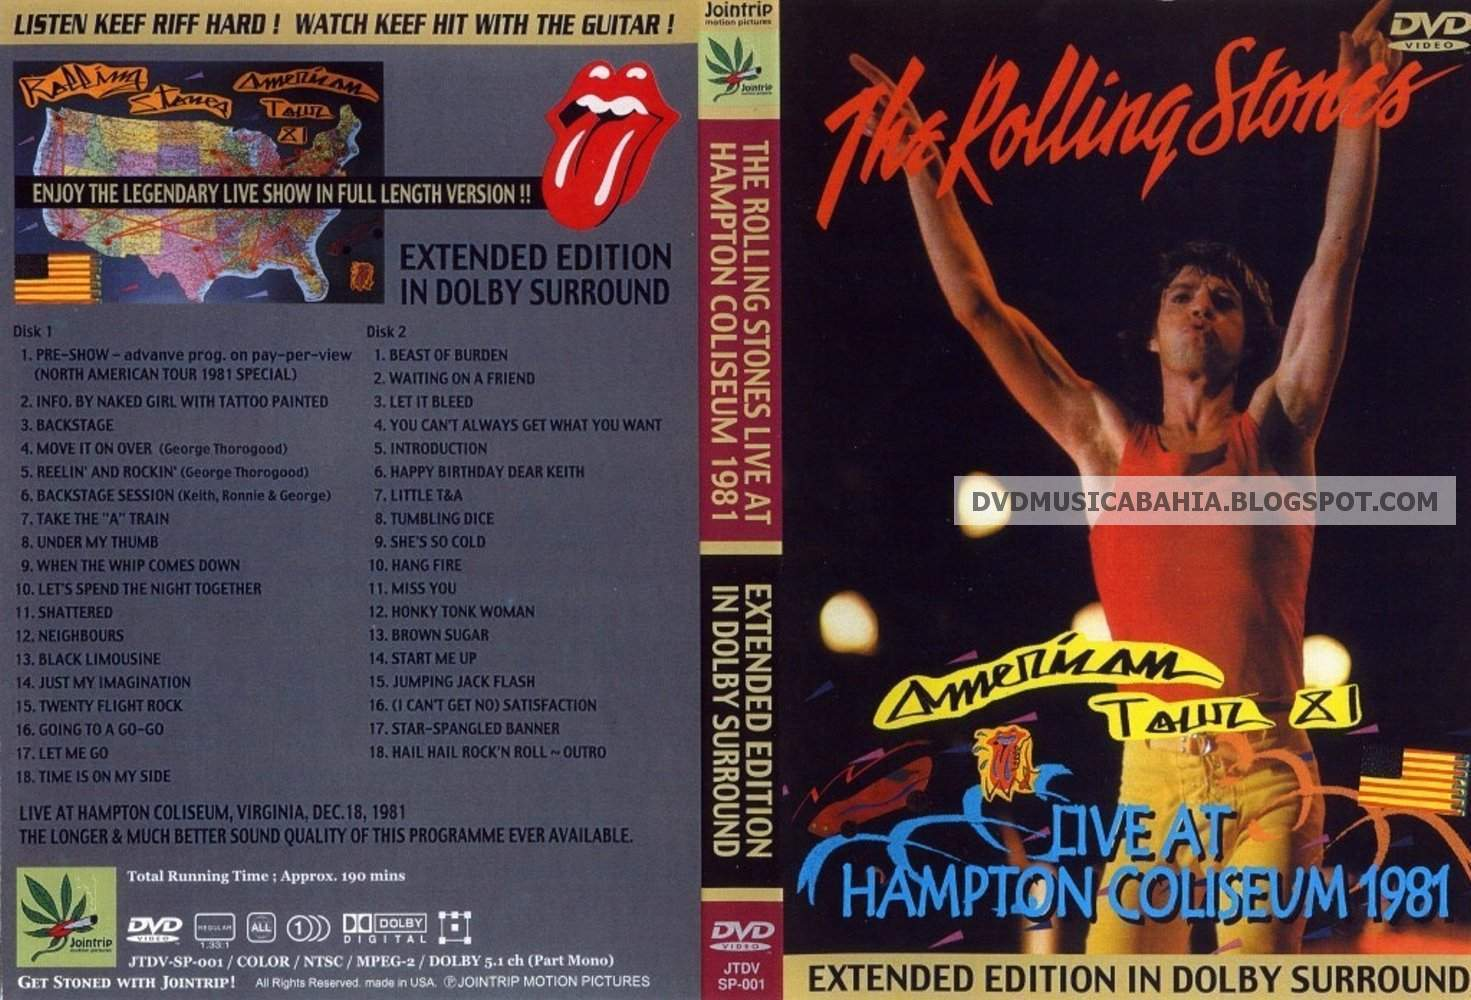 http://3.bp.blogspot.com/-xYoKKTUYJog/TWHYoD--tHI/AAAAAAAABfs/rNlZ_Rsqs-A/s1600/The+Rolling+Stones+-++Live+At+Hampton+Coliseum+1981.jpg